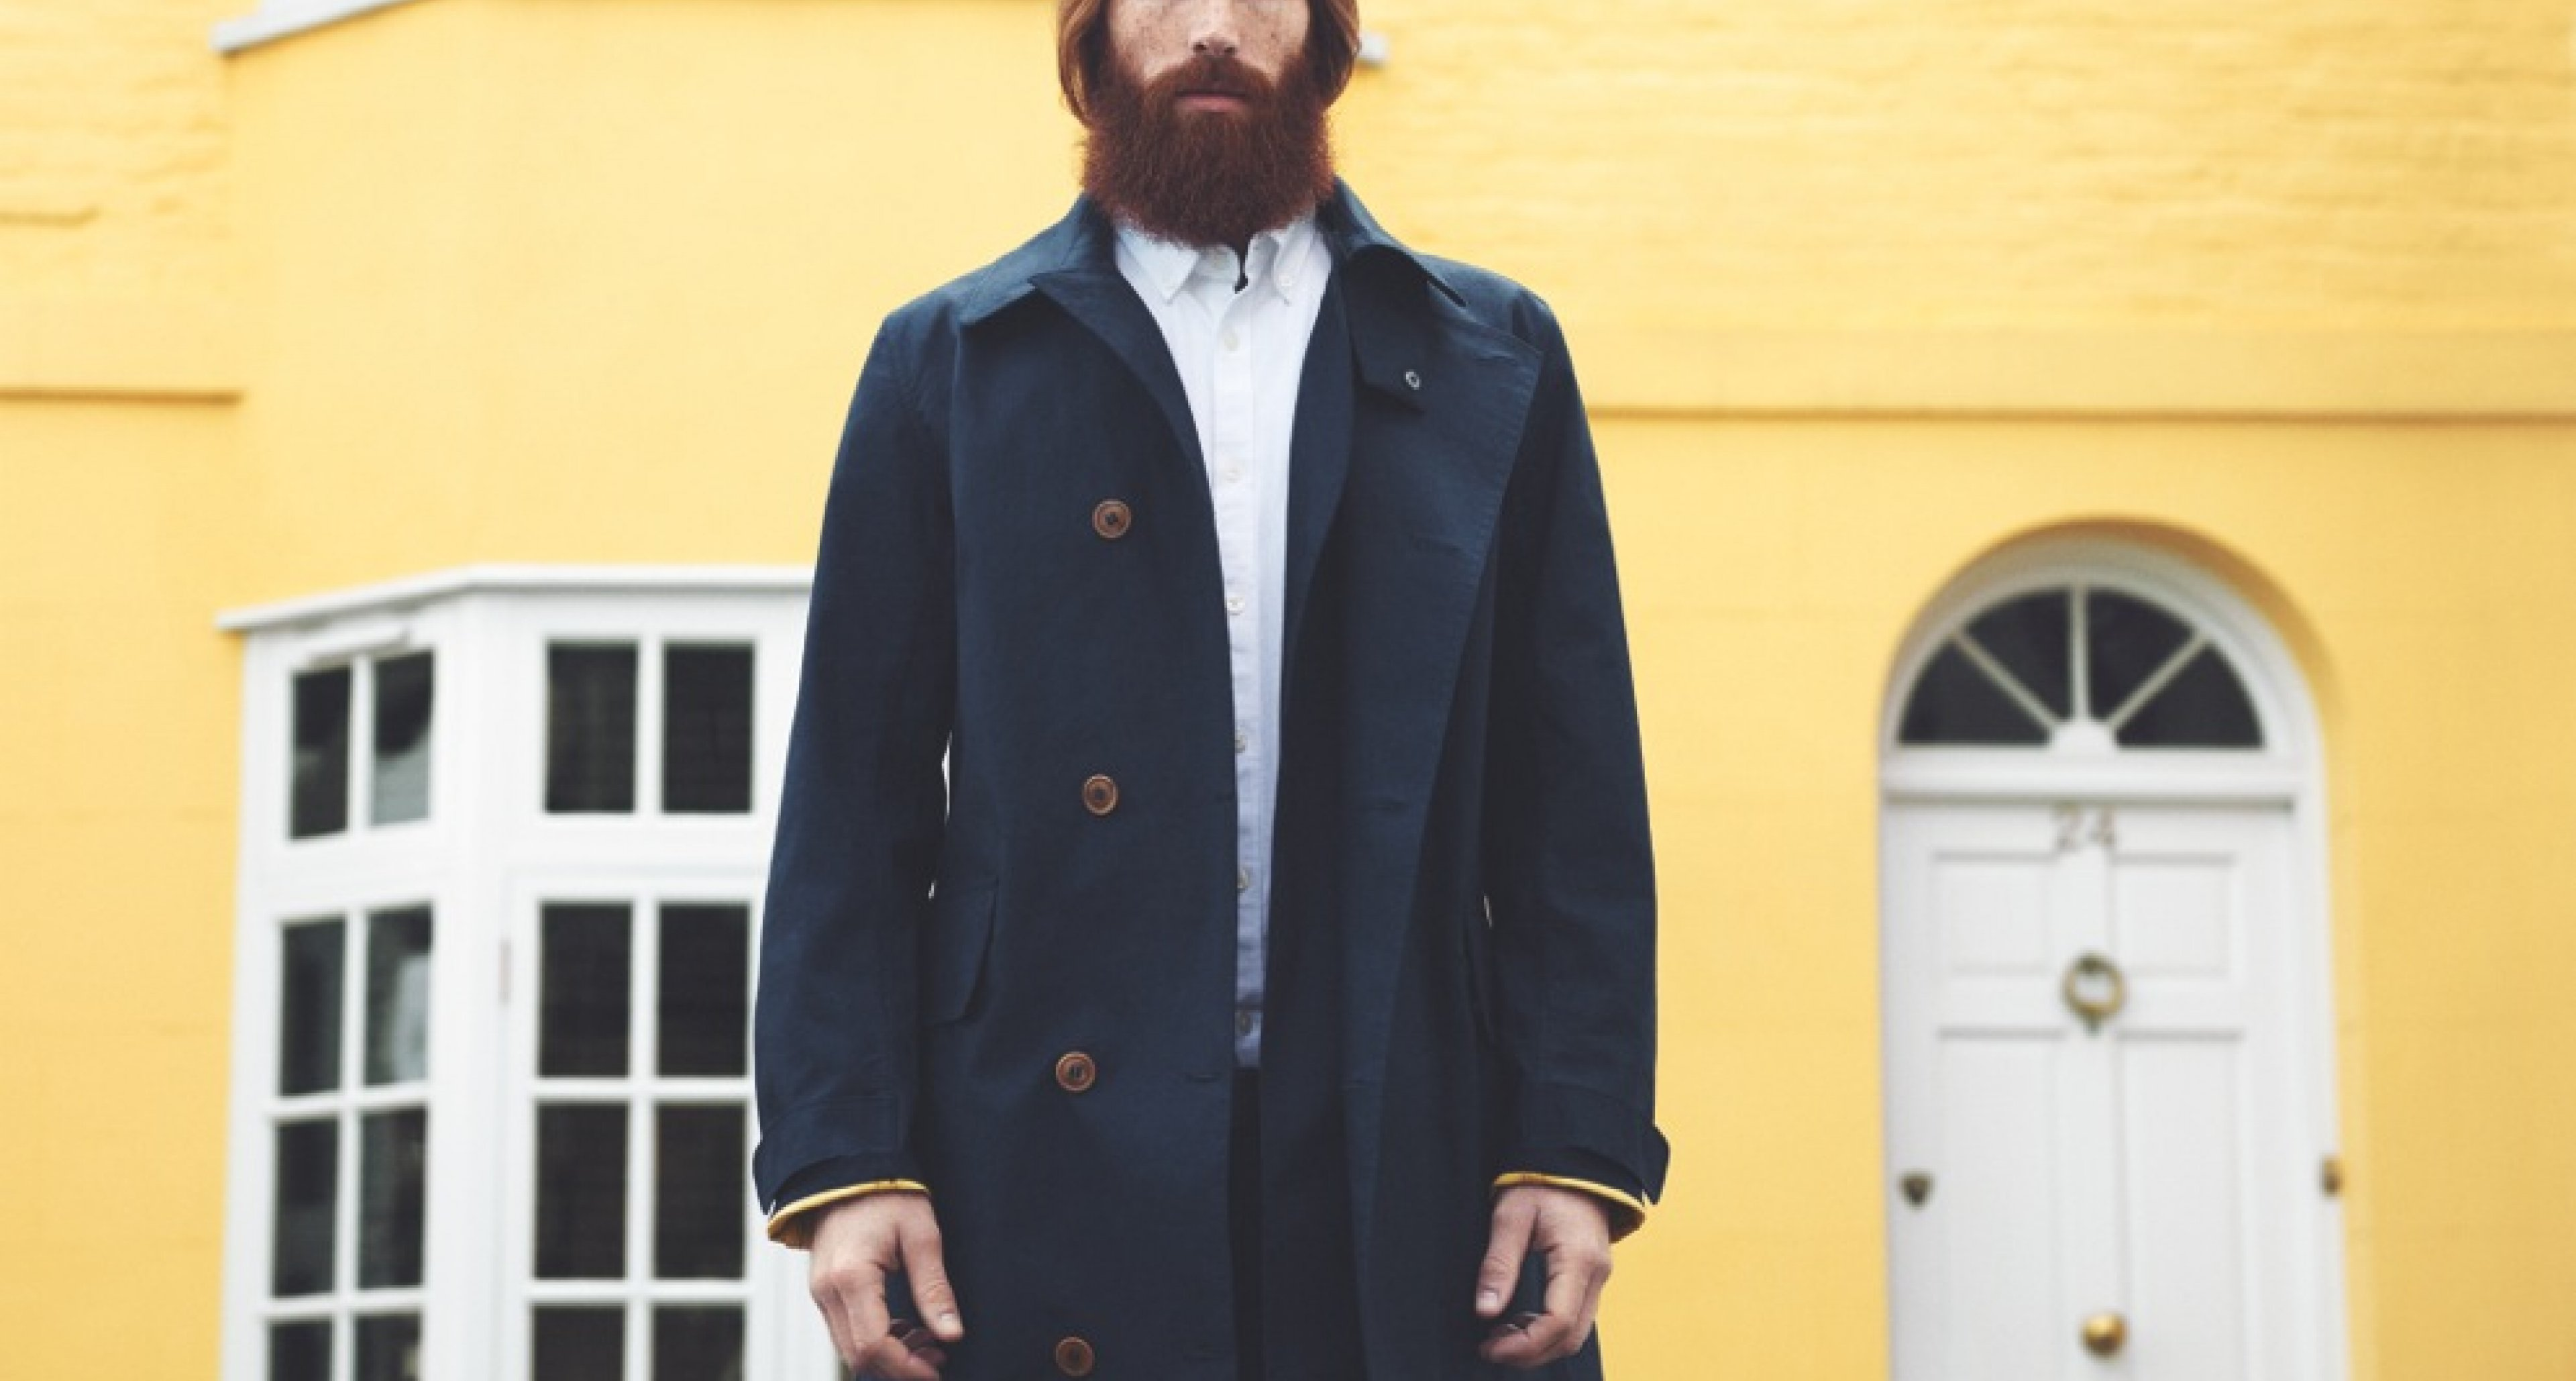 The Stanhope coat of the Barbour x Norton & Sons Beacon Collection